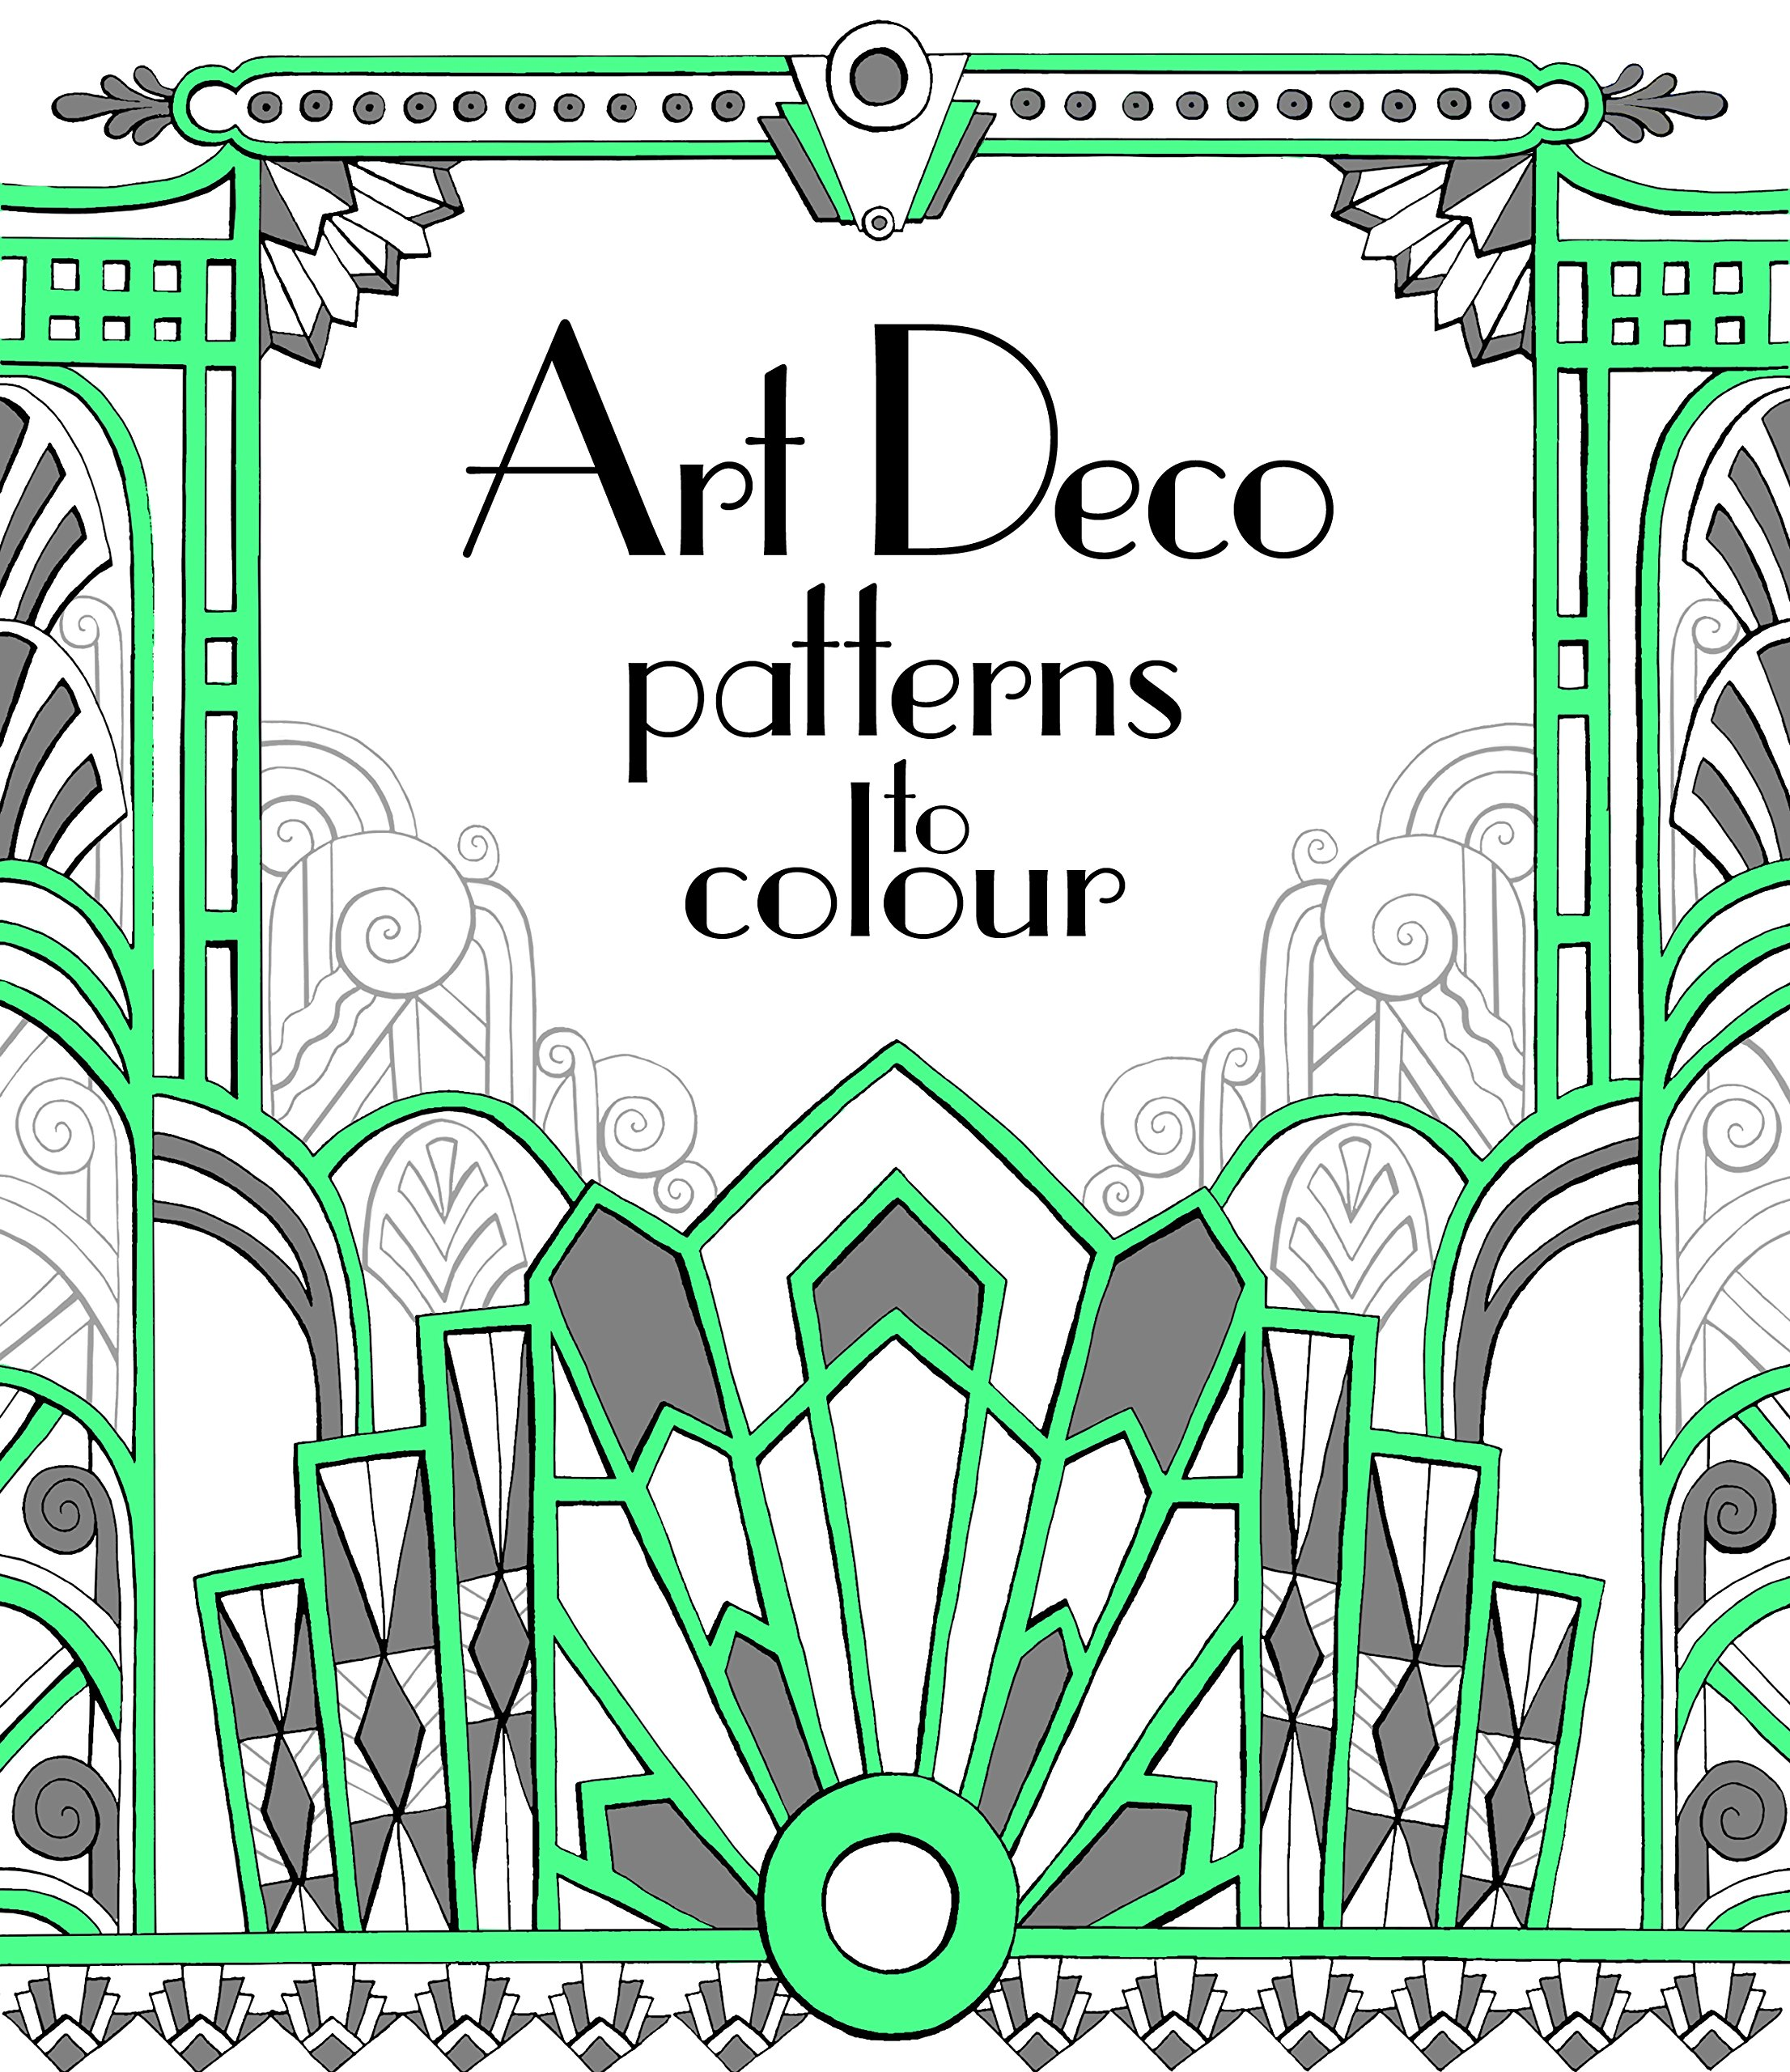 Famous Coloring Book Wallpaper Tiny Coloring Book App Round Bulk Coloring Books Animal Coloring Book Youthful Animal Coloring Books PinkBig Coloring Books Art Deco Patterns To Colour: Amazon.co.uk: Emily Bone, Mary ..